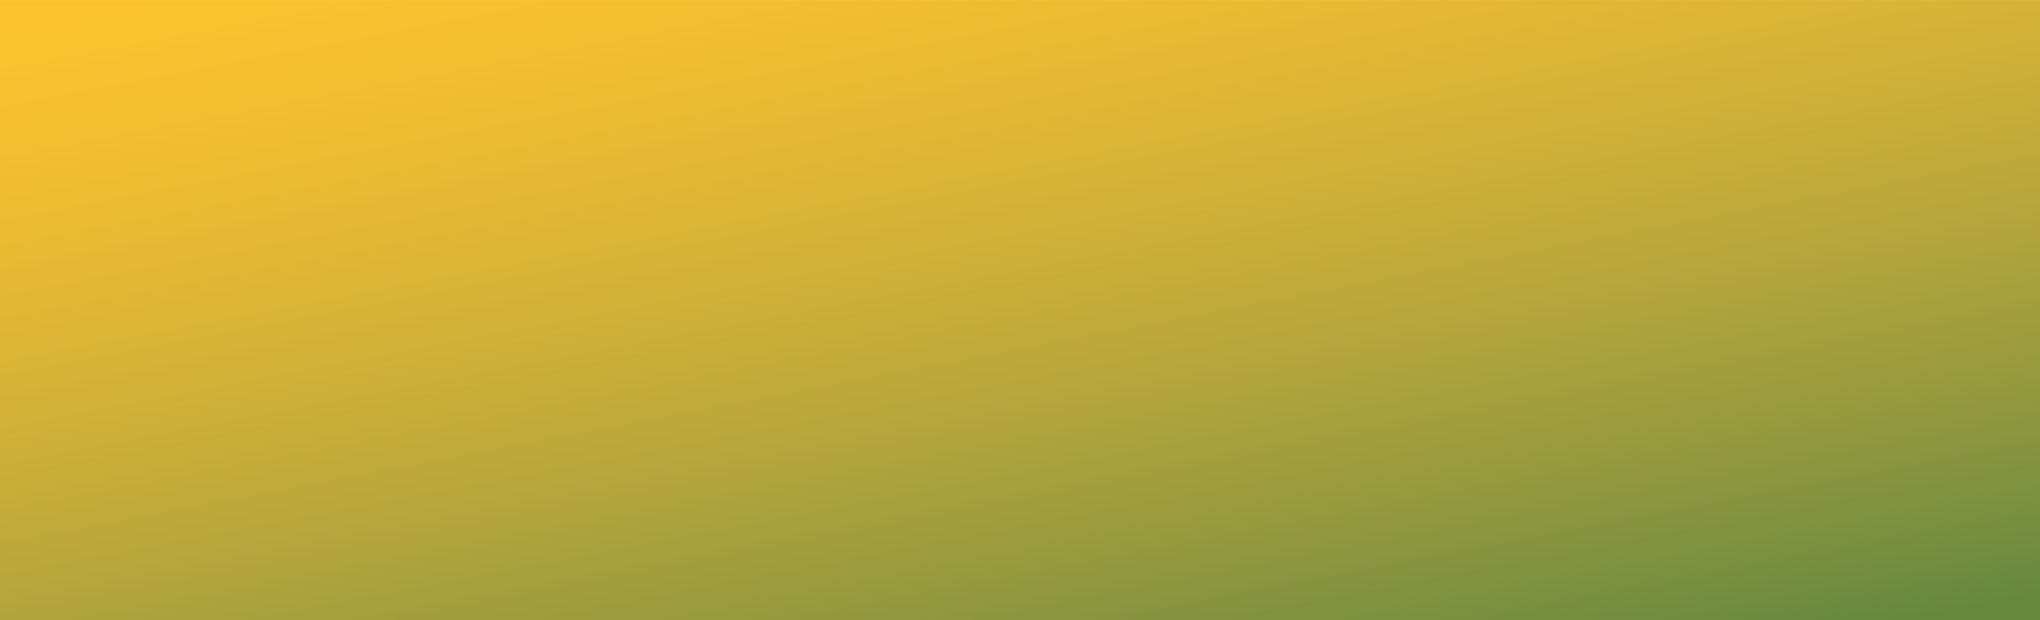 GatorWorld Banner Background